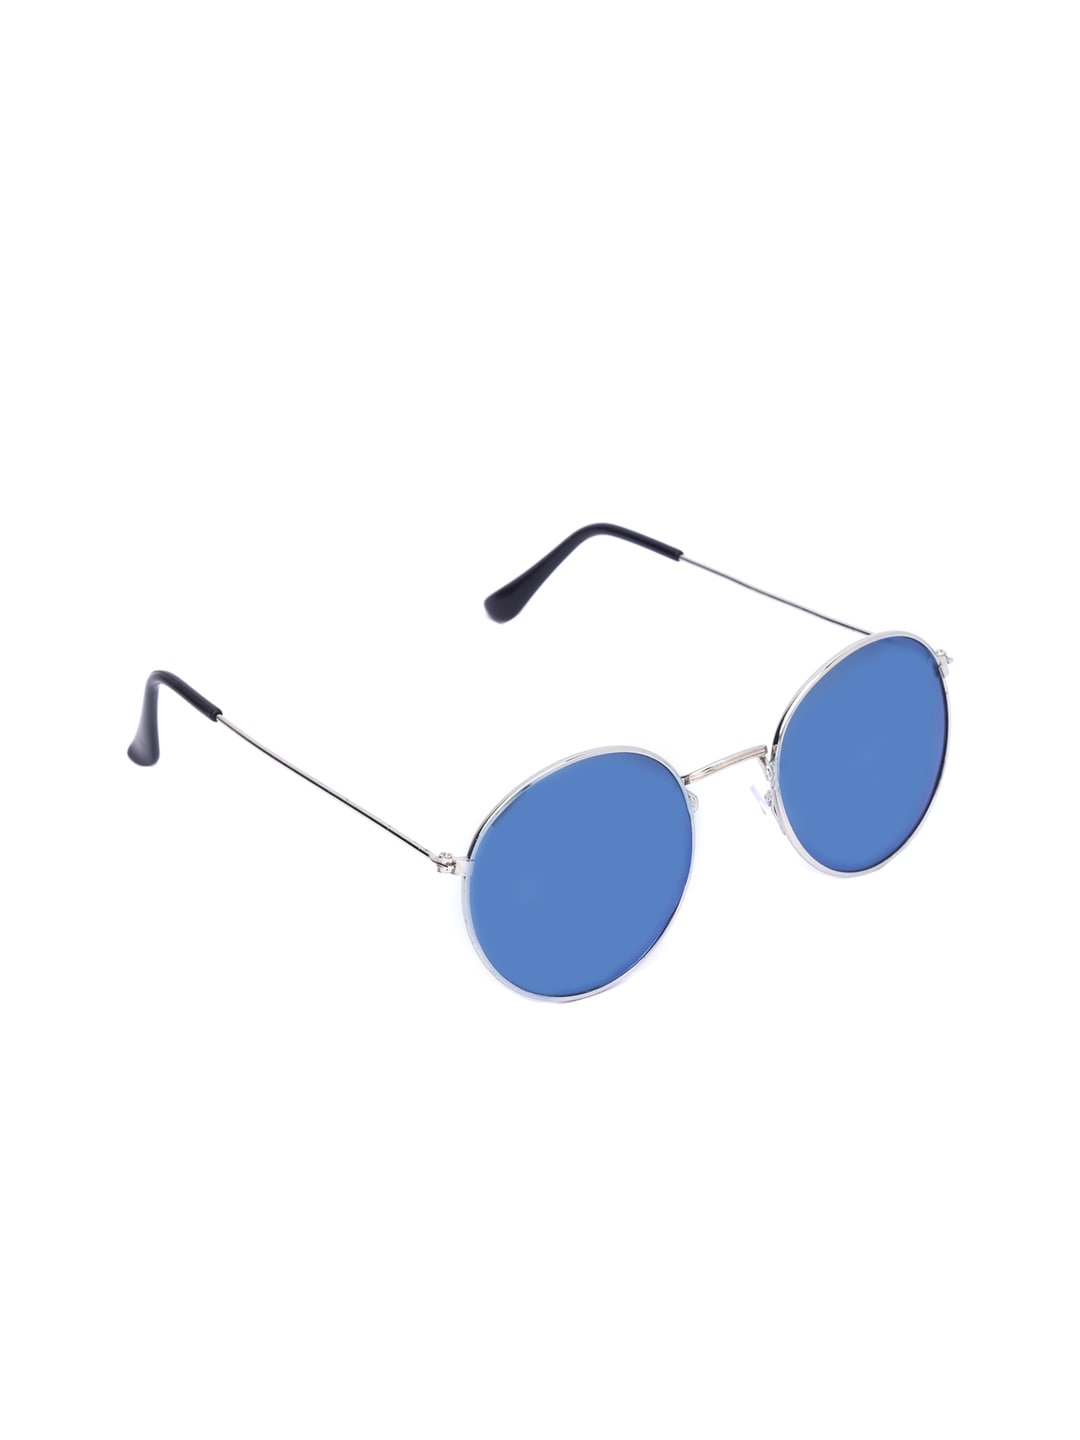 c323e680d2c68 Sunglasses For Women - Buy Womens Sunglasses Online